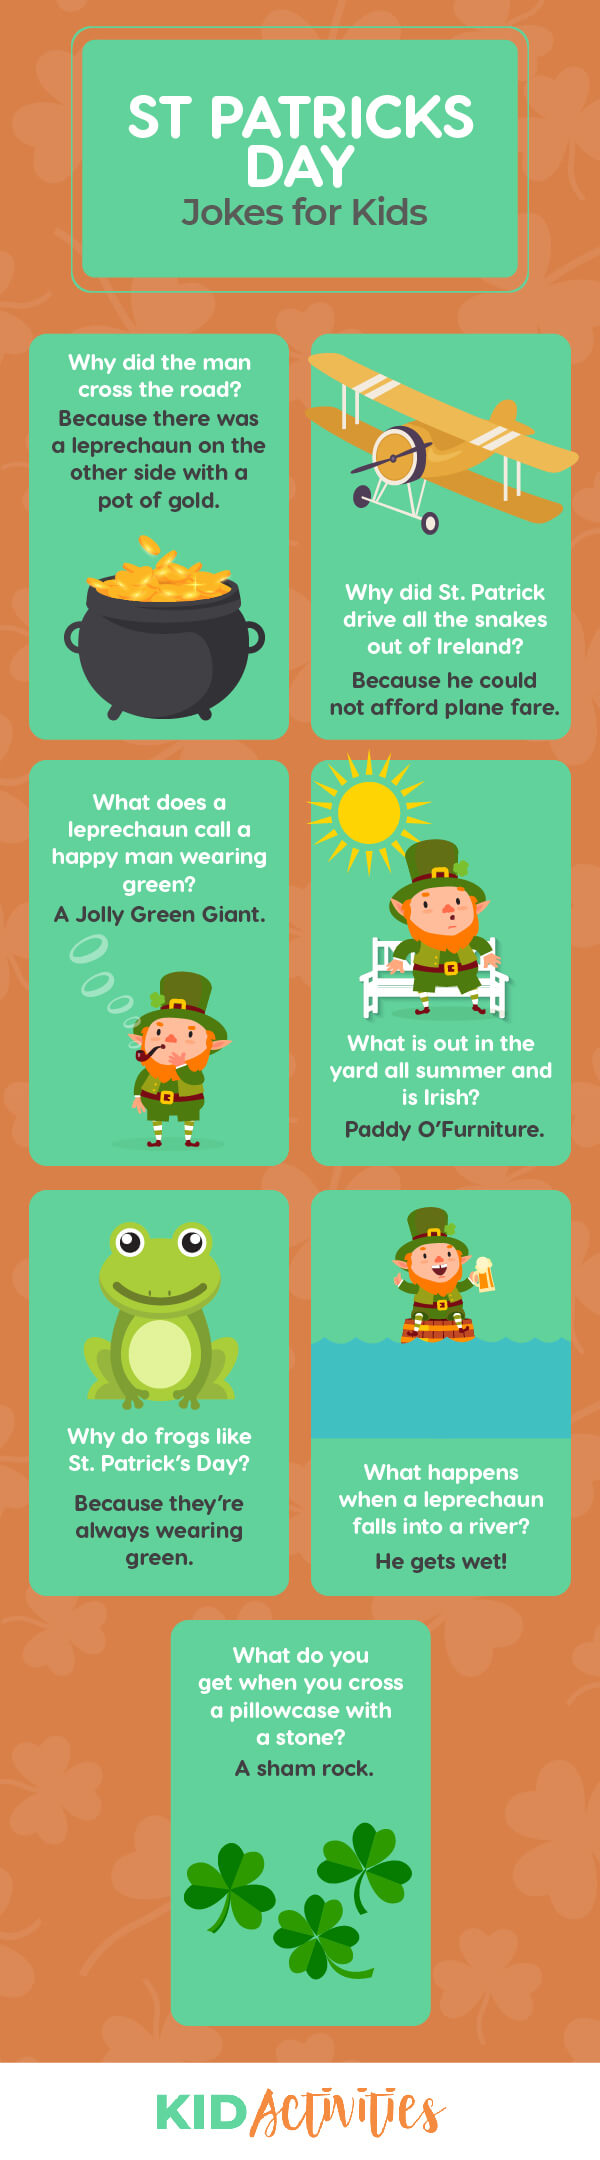 A collection of clean St. Patrick's Day jokes for kids of all ages.